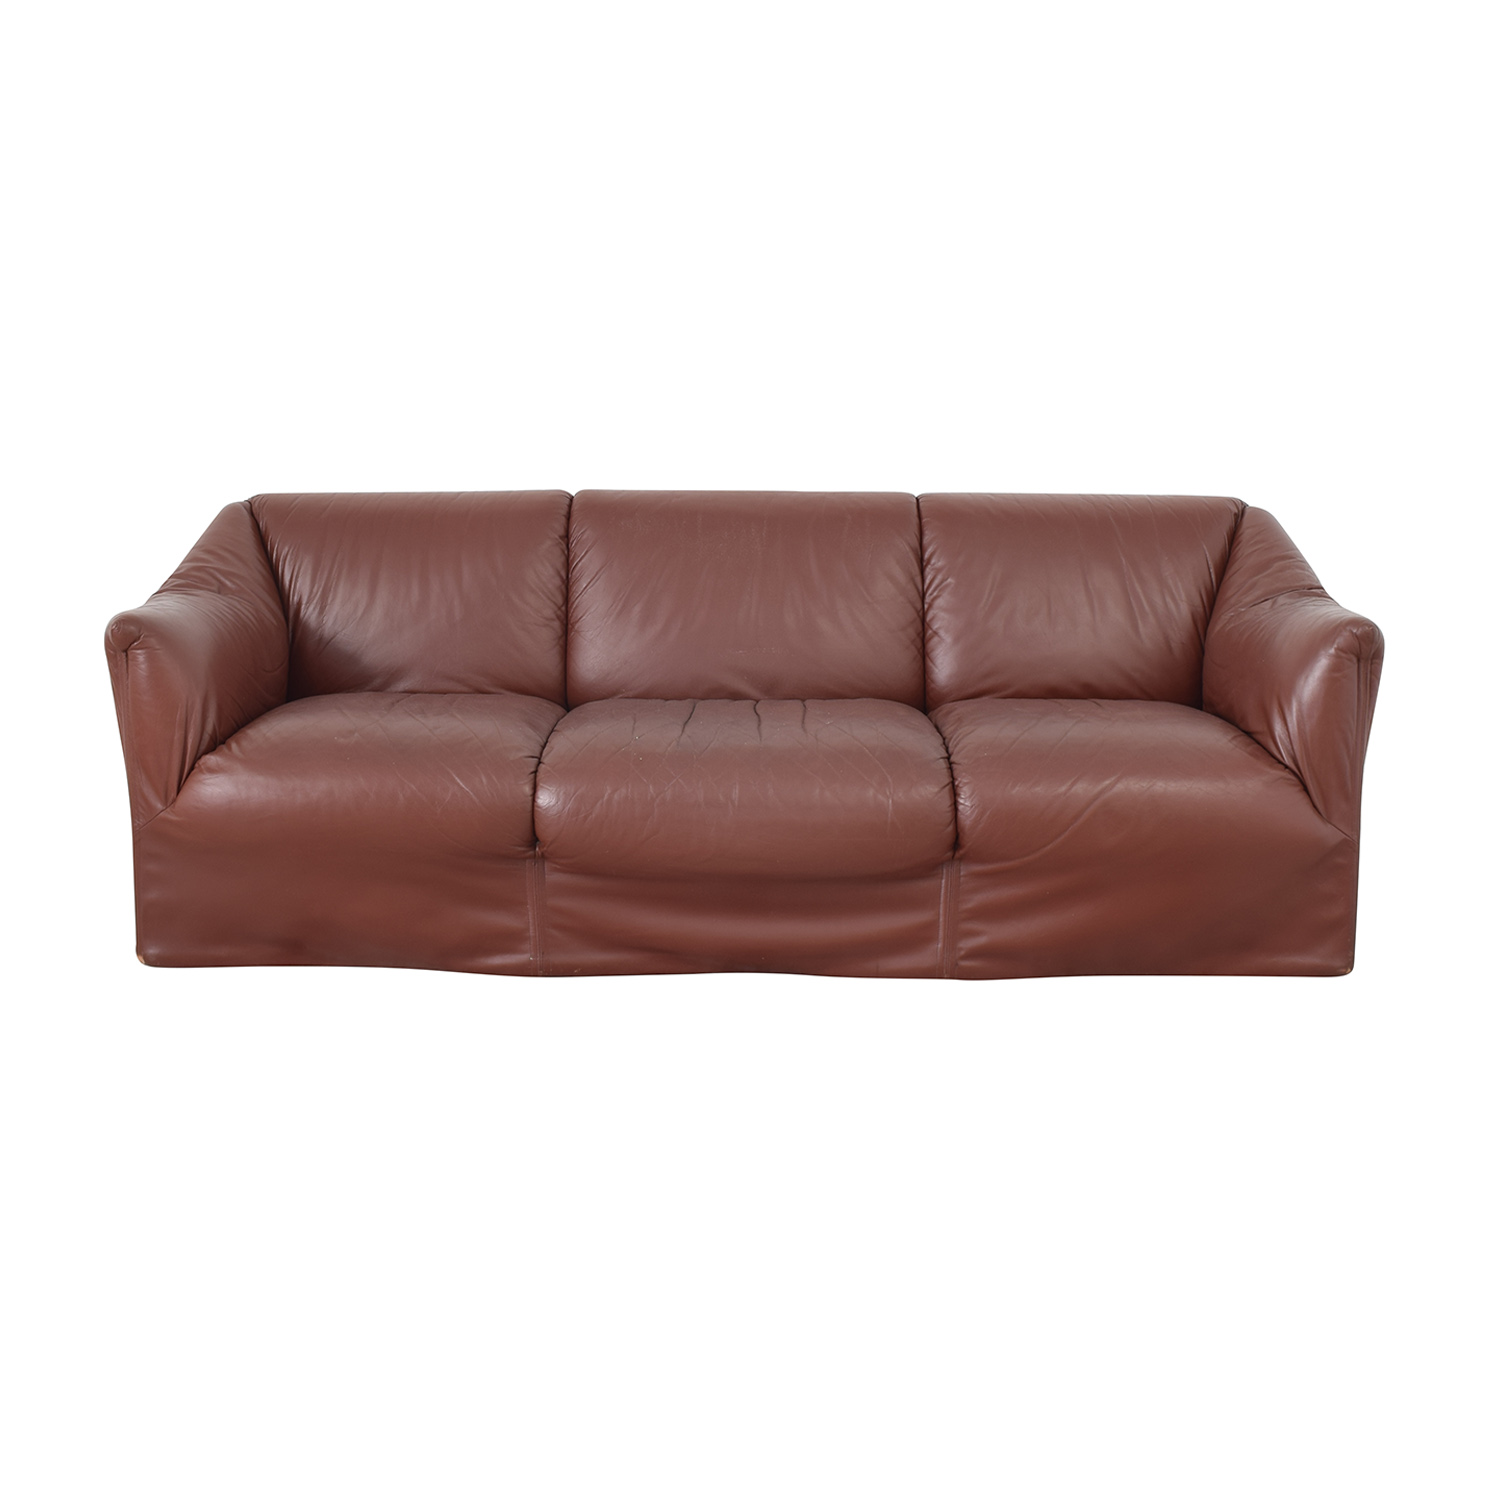 Cassina Mario Bellini for Cassina Tentazione Sofa pa